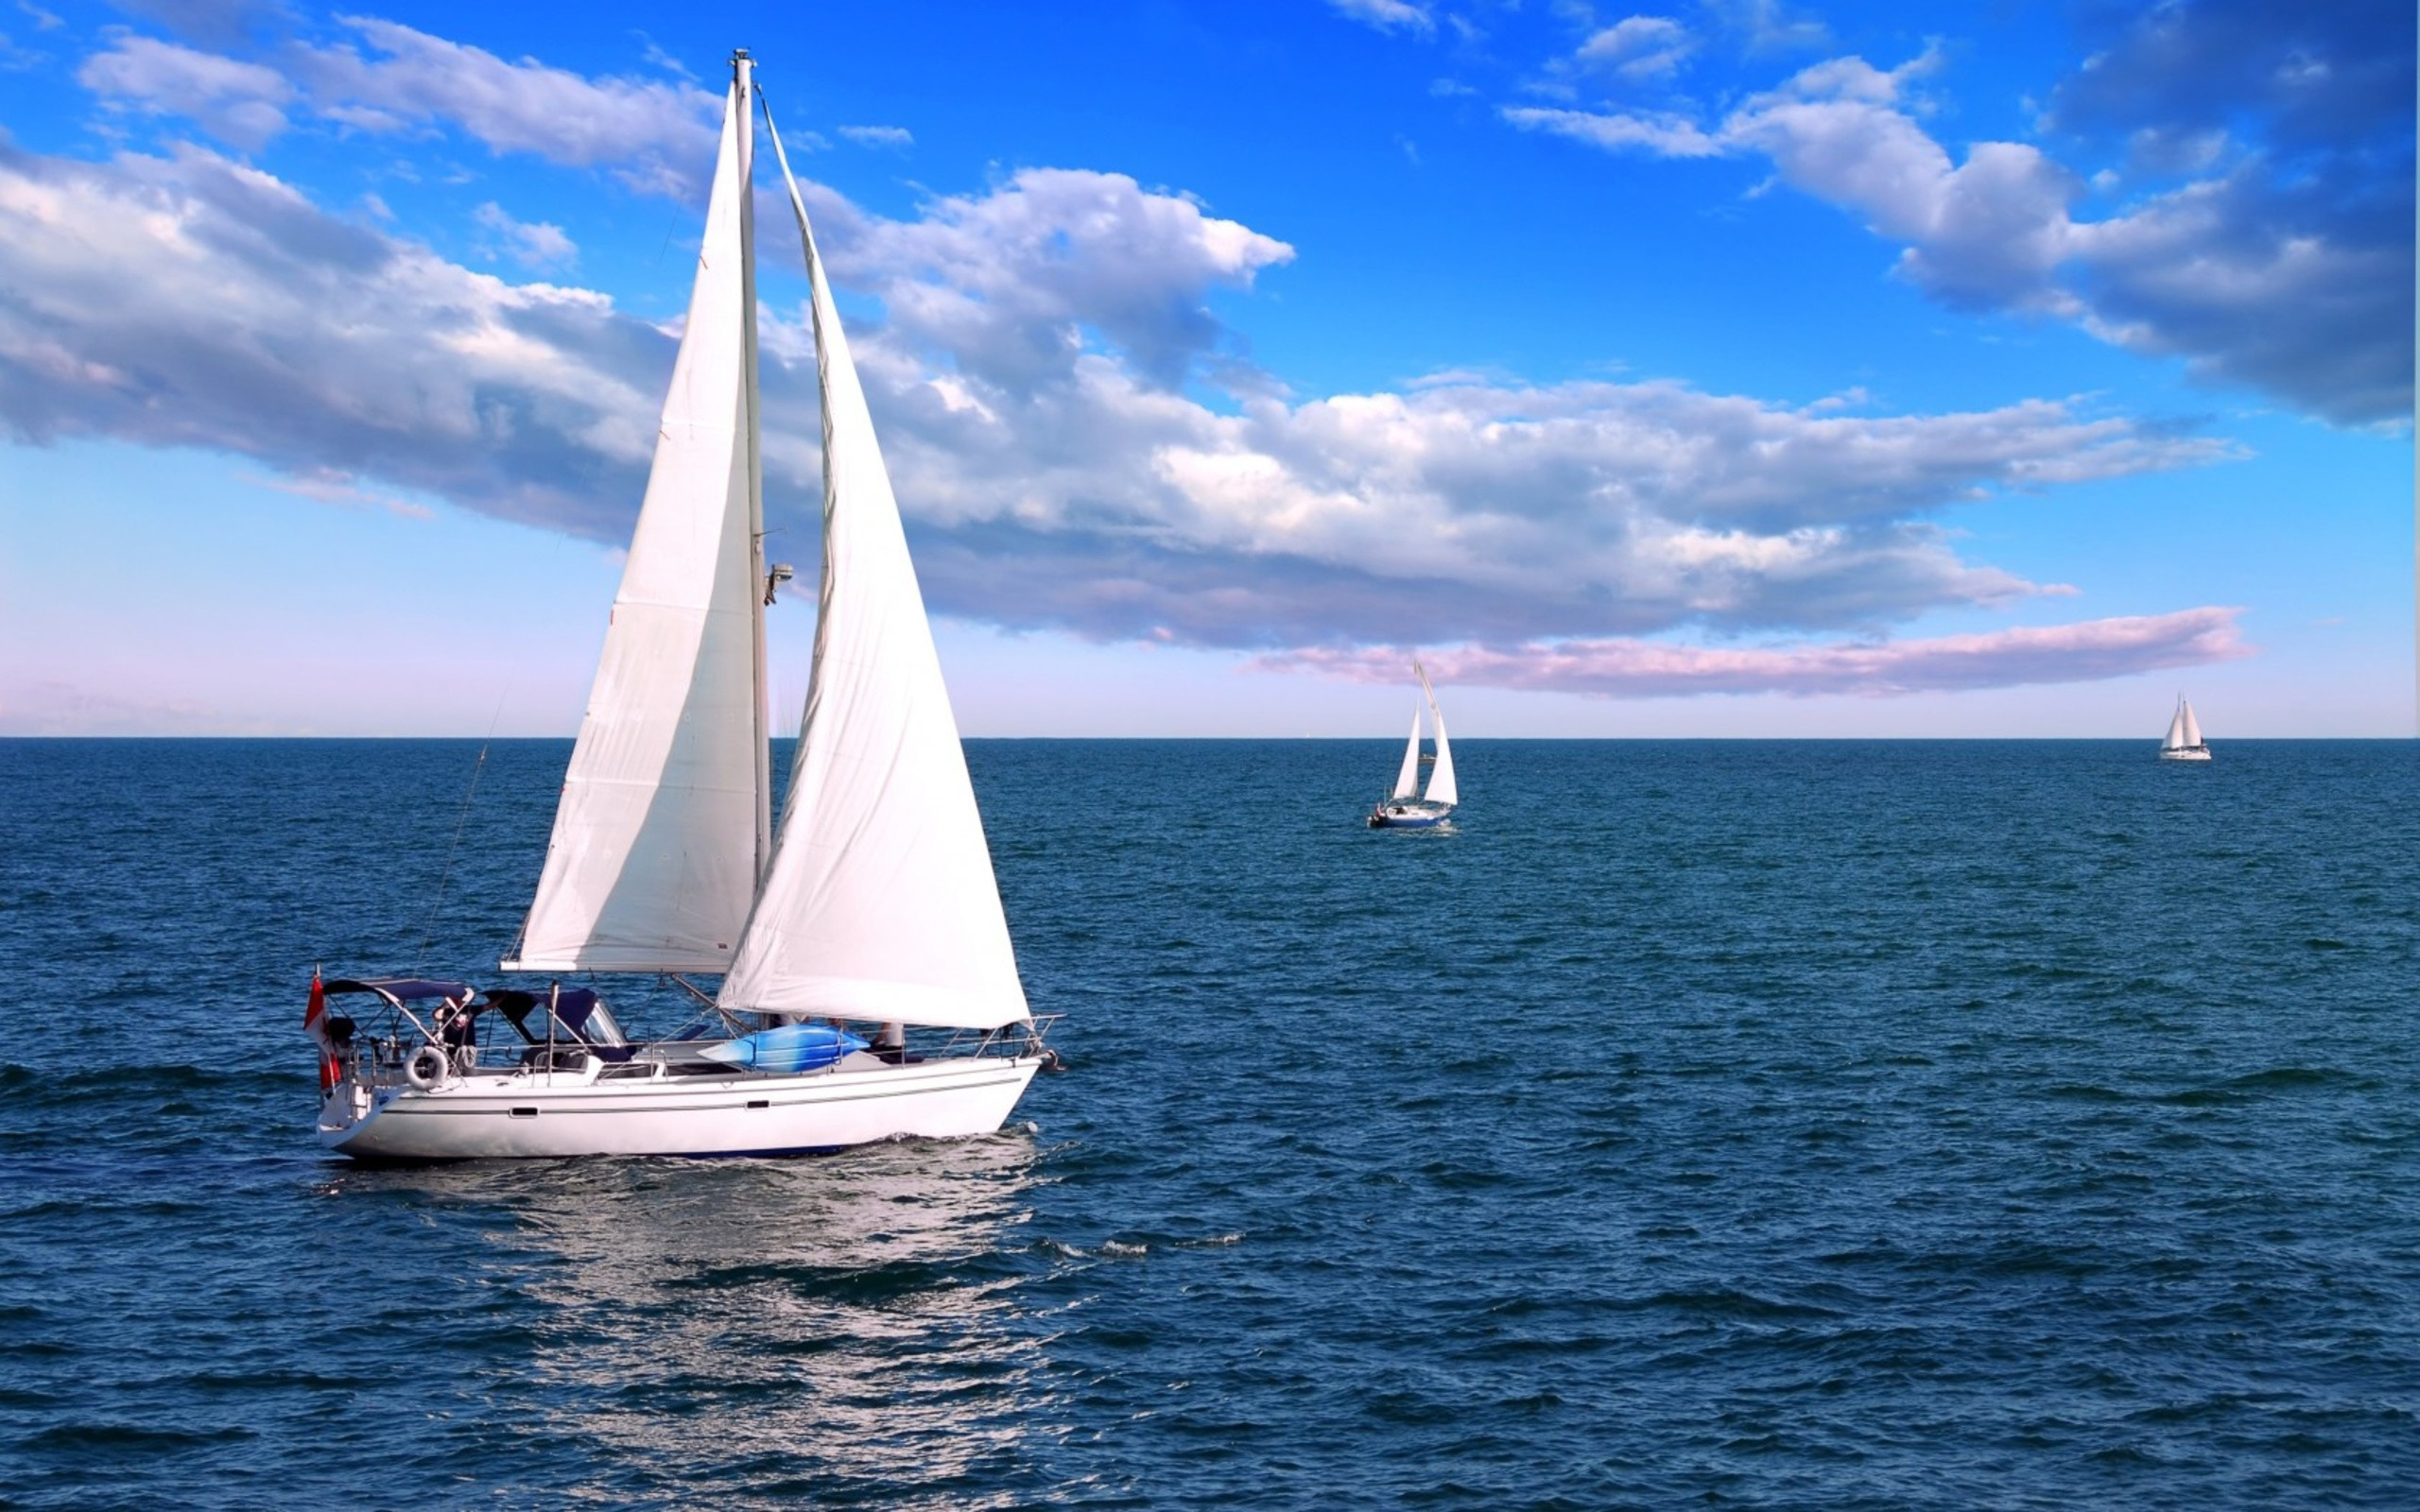 2560x1600 Sailboat HD Wallpaper | Background Image |  | ID:369487 - Wallpaper  Abyss